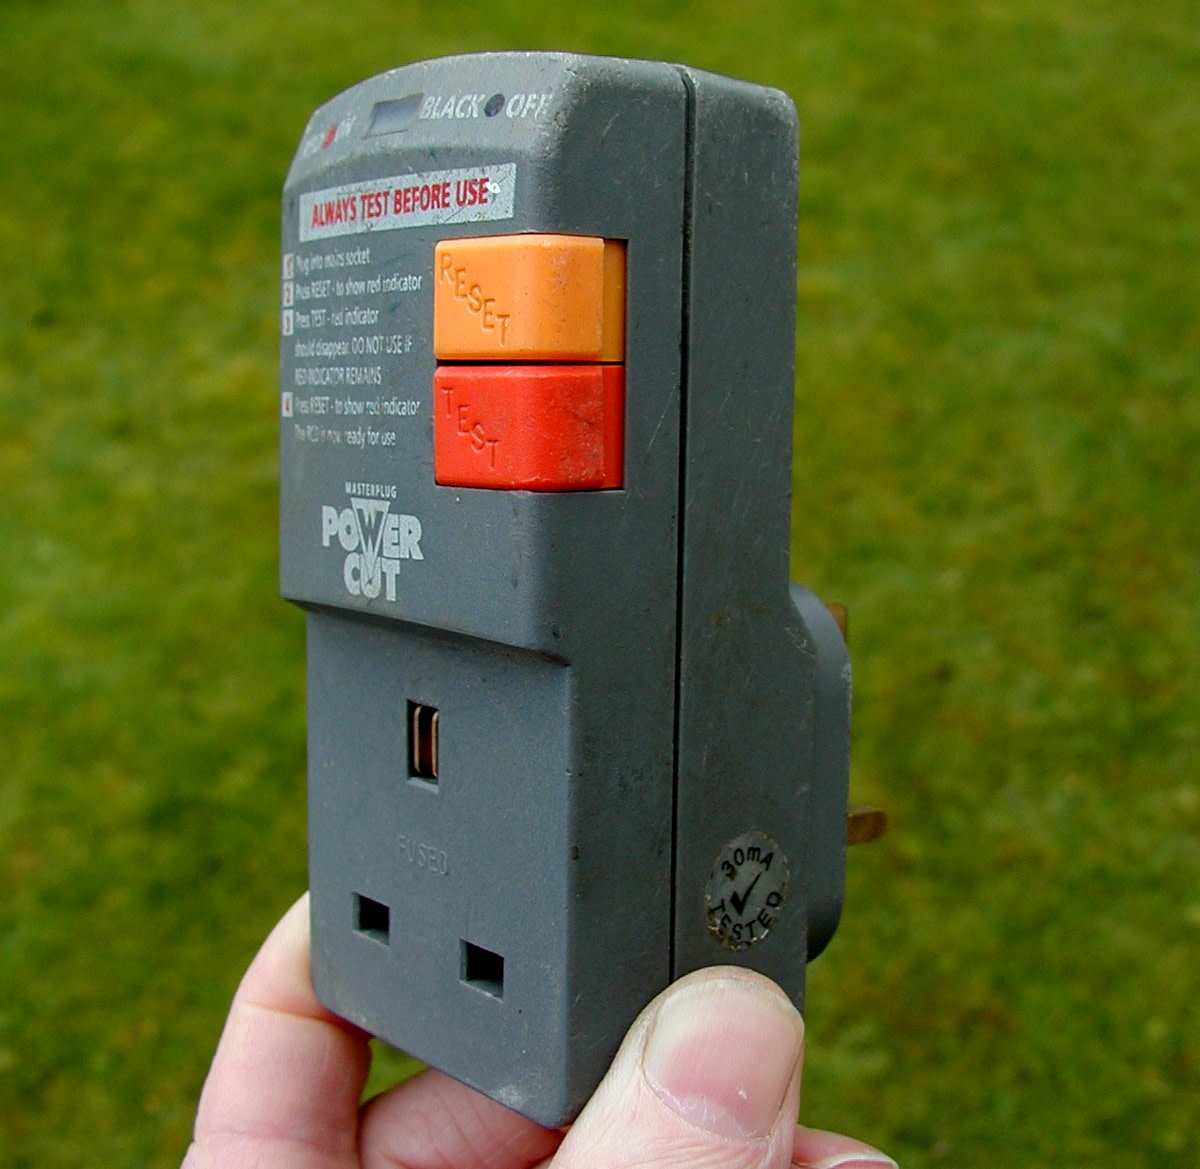 How to Prevent Electrical Shock in the Home - Using an RCD (GFCI)